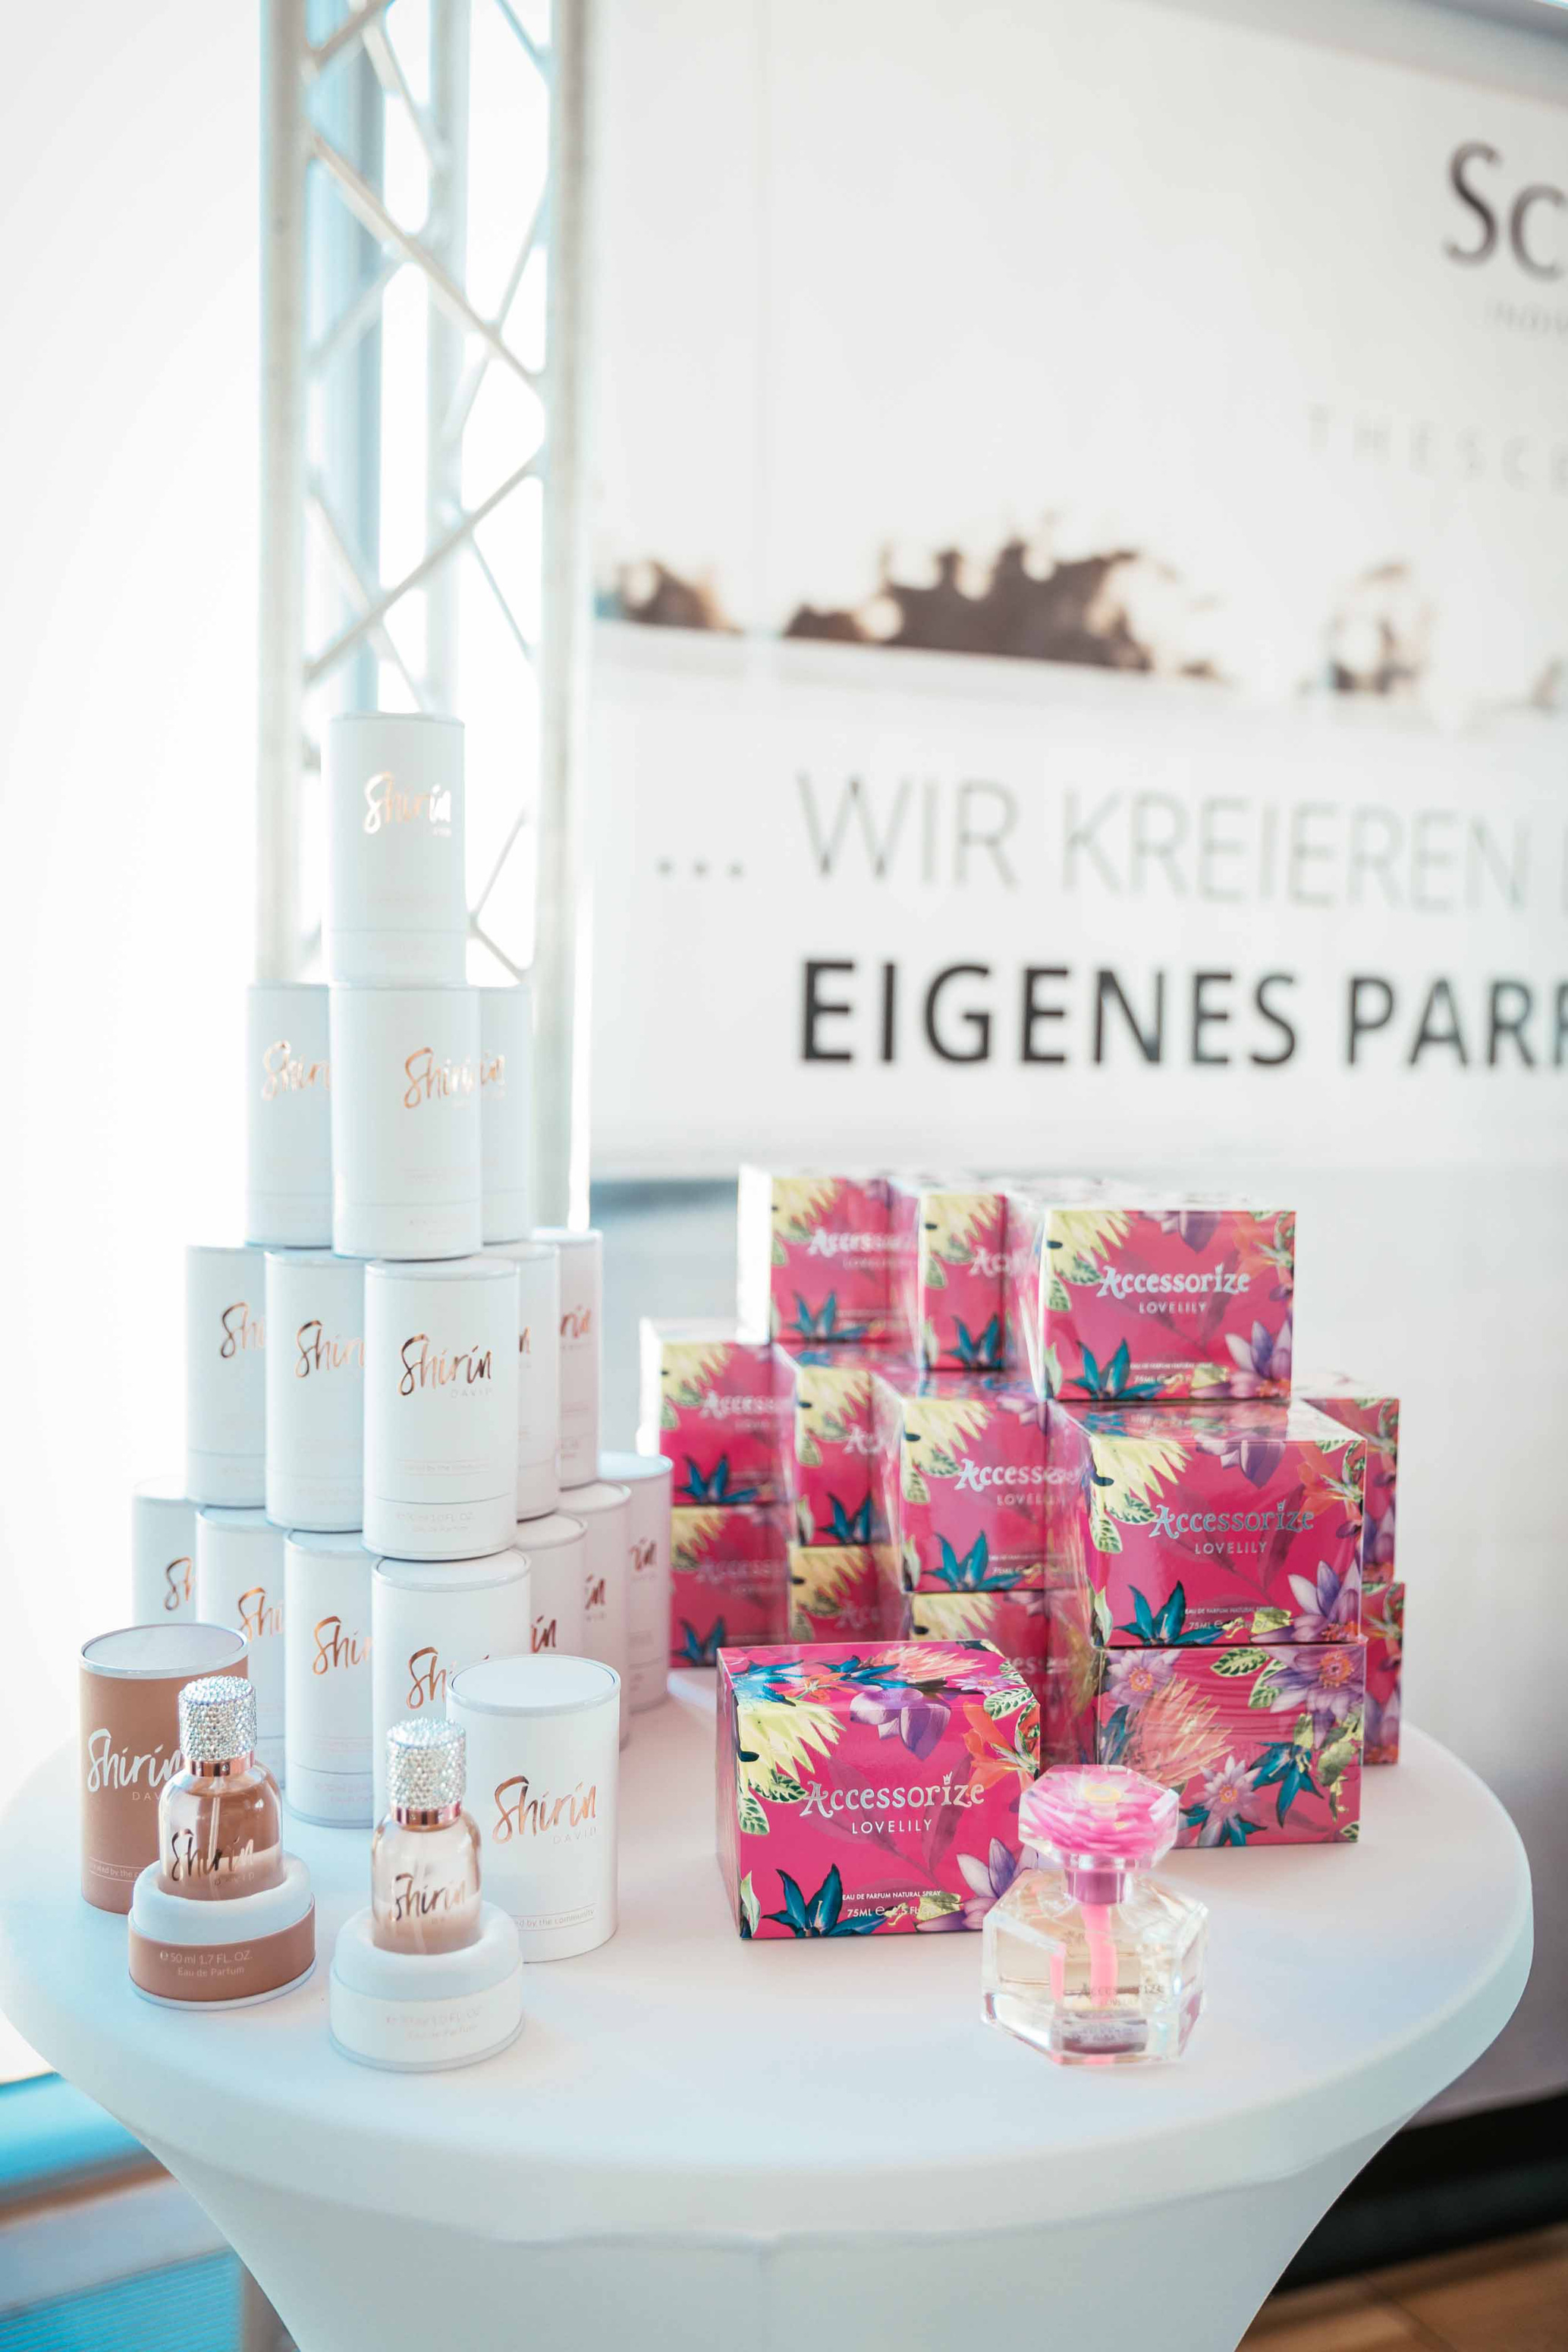 Beautypress Blogger Event Oktober 2017 in Köln Favoriten Kosmetik Neuheiten